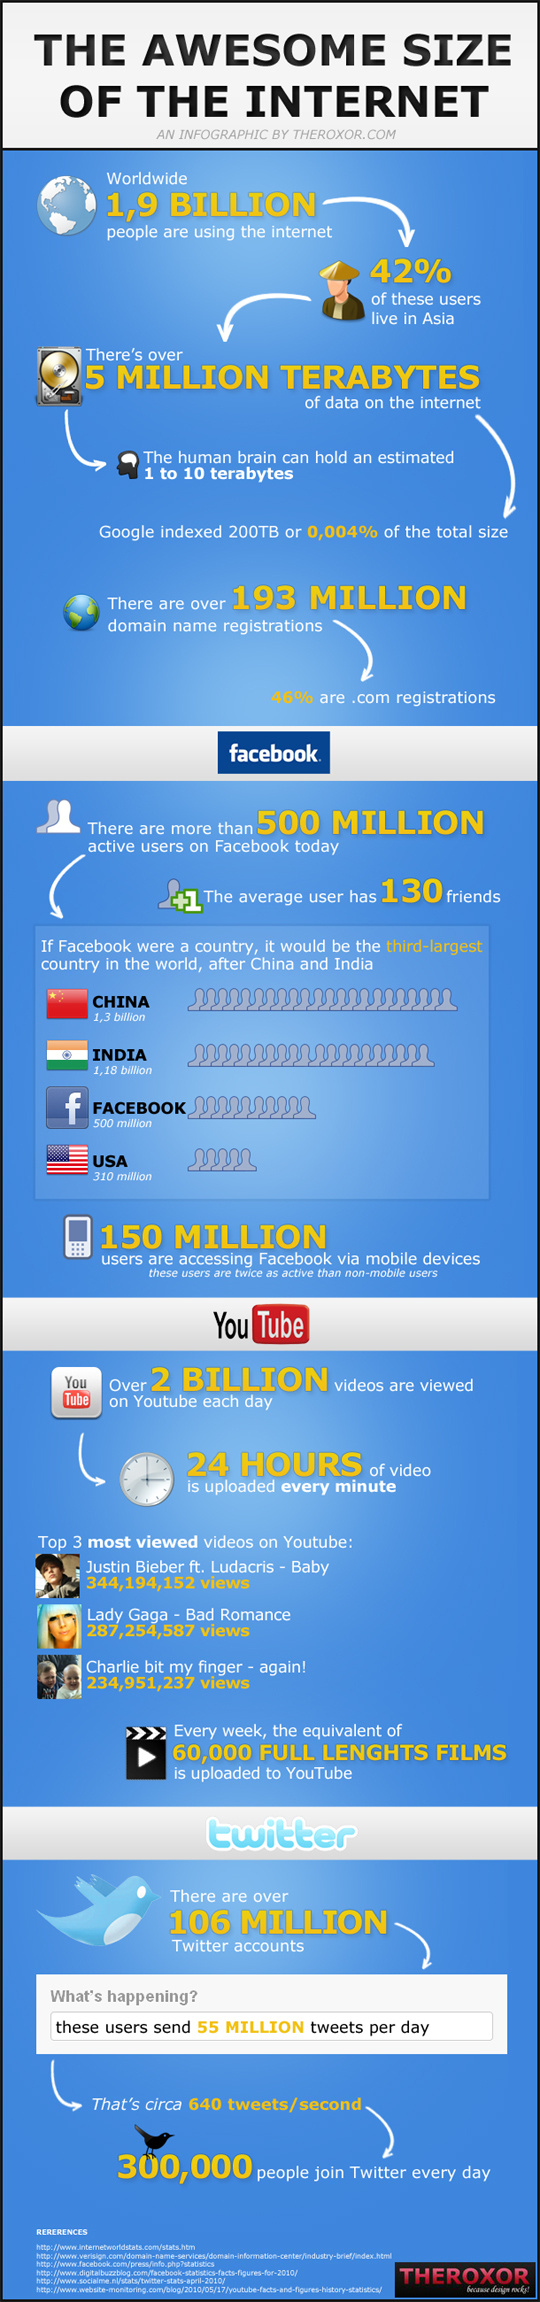 10 Most Insightful Infographics About Internet 10